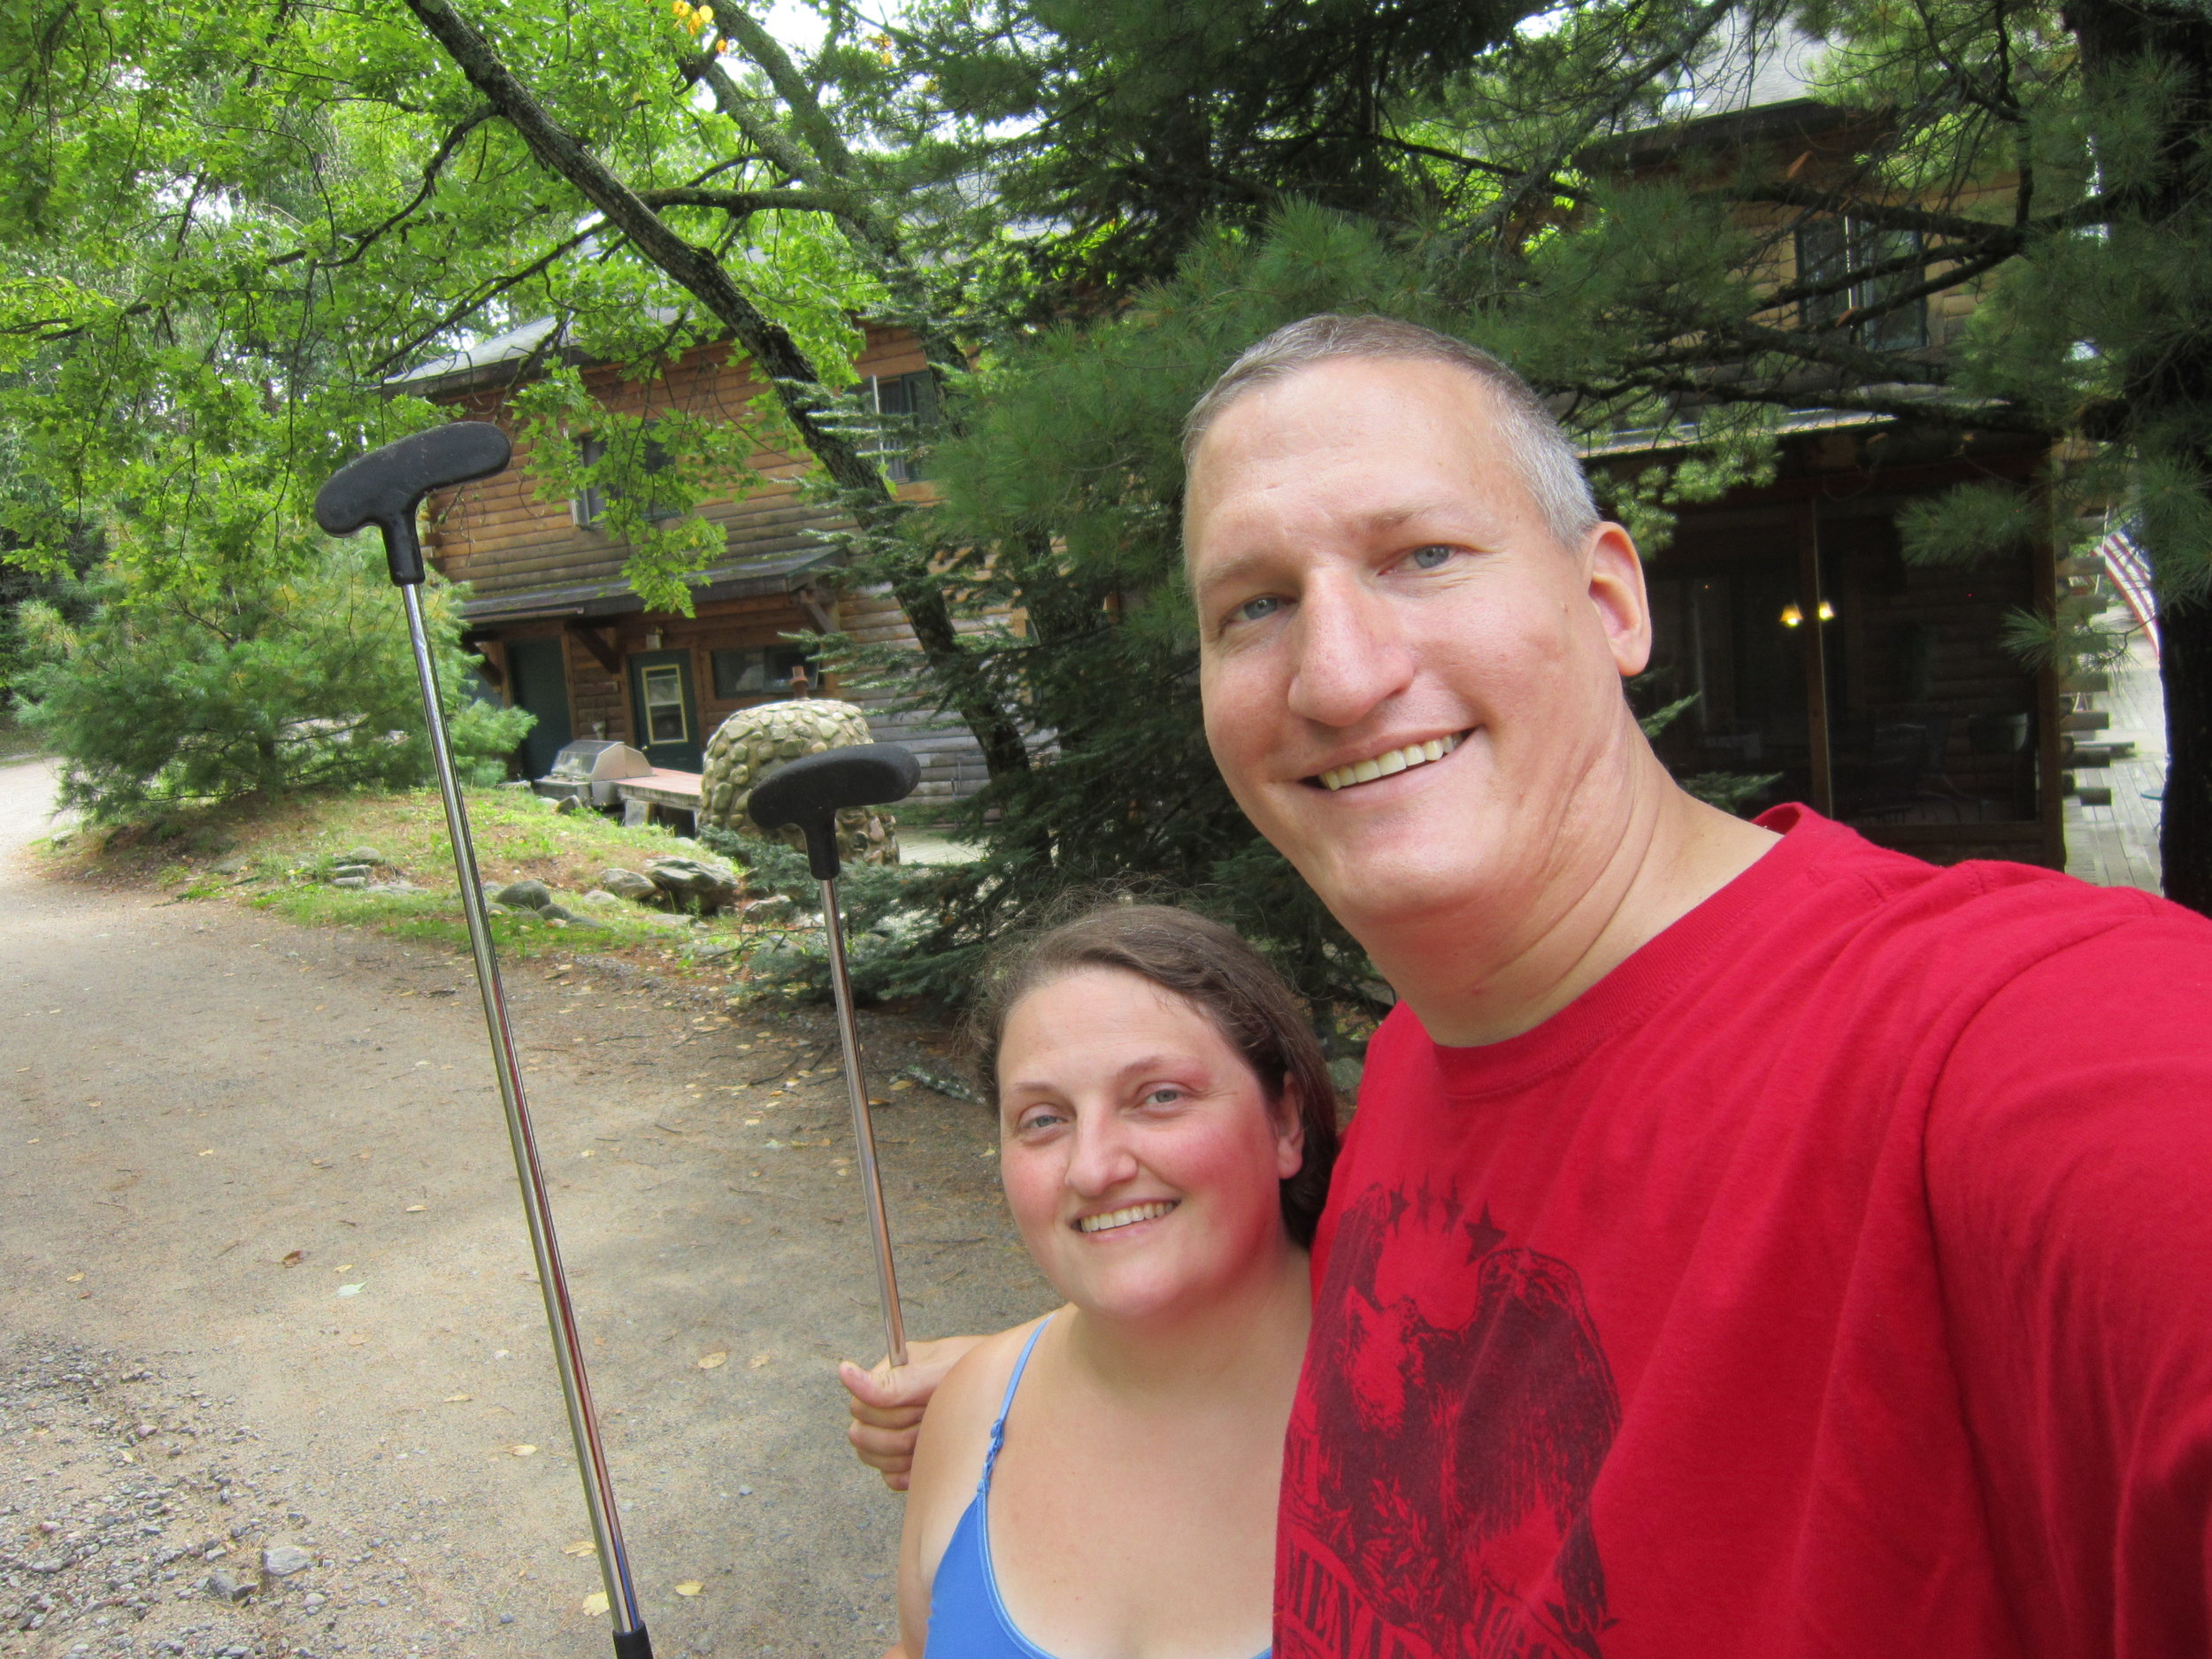 adventure golf at elbow lake lodge in cook, minnesota